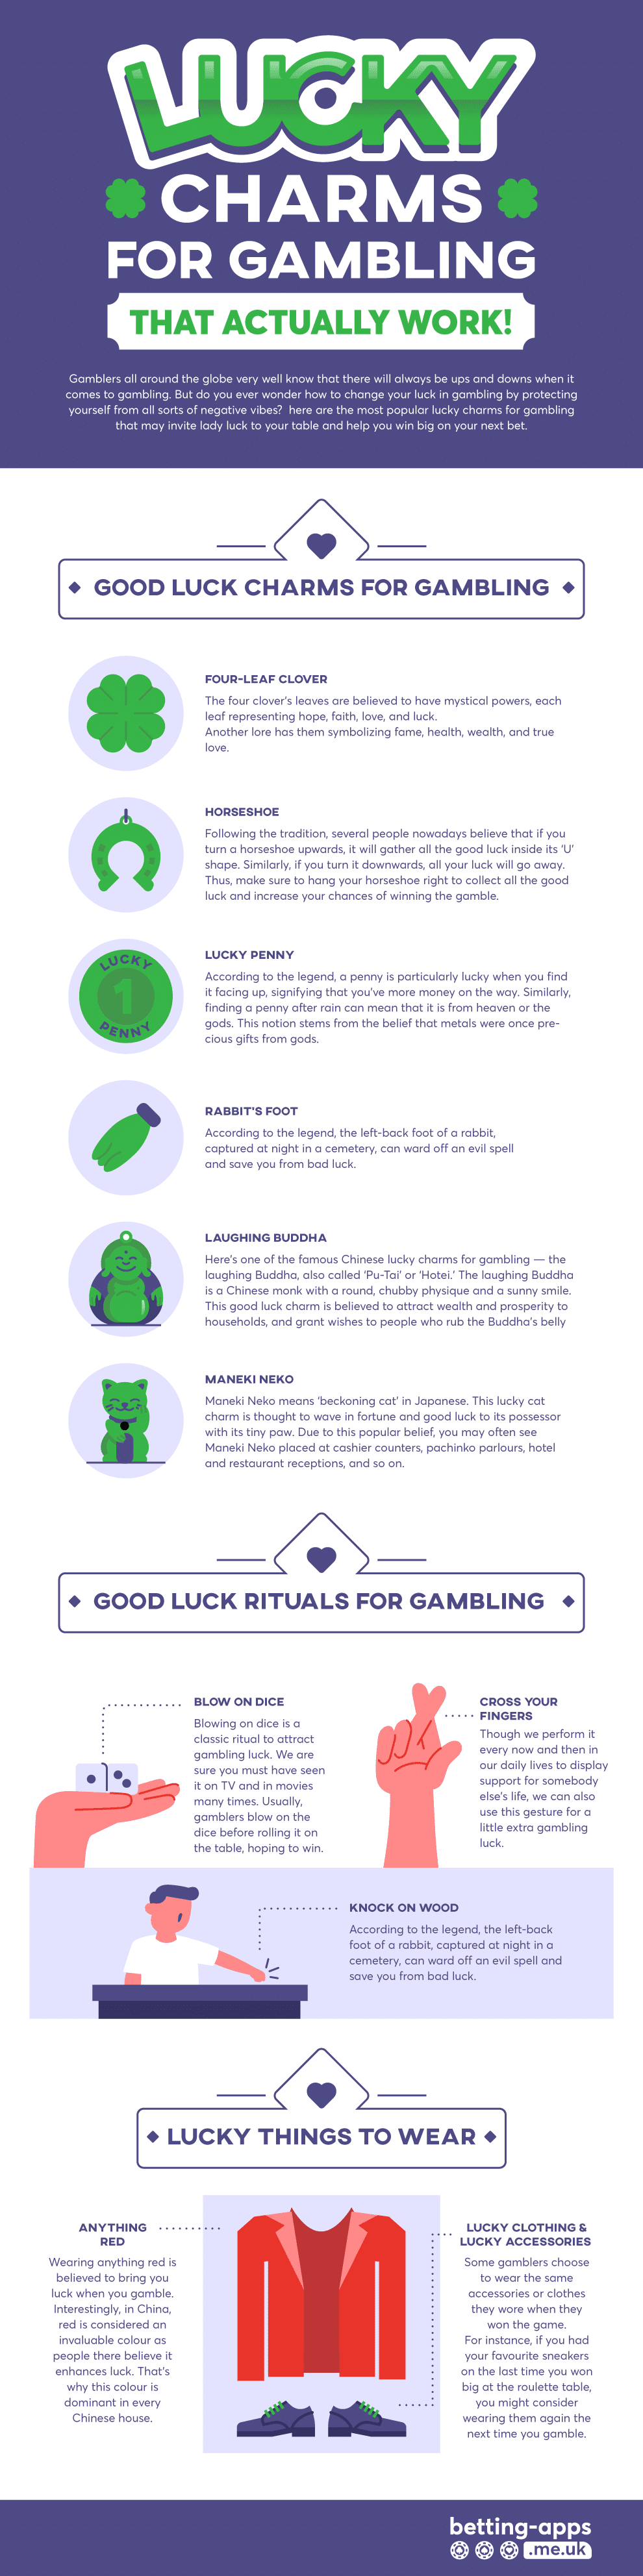 Lucky Charms for Gambling Infographic